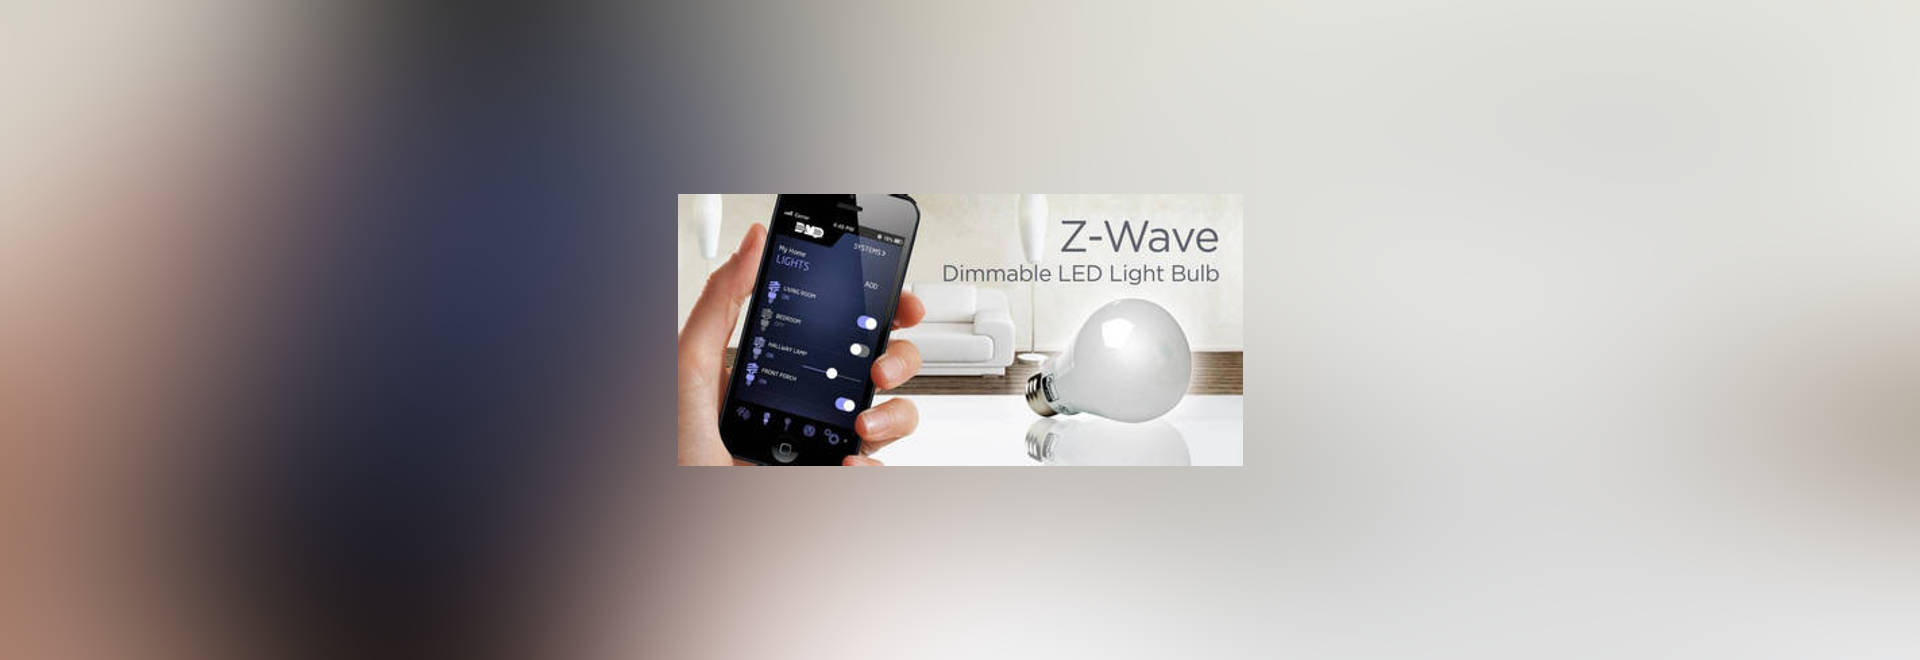 After it is screwed into any normal light bulb socket Z-LB60Z-1 & Dimmable LED Light Bulb simplifies Z-wave lighting control ... azcodes.com